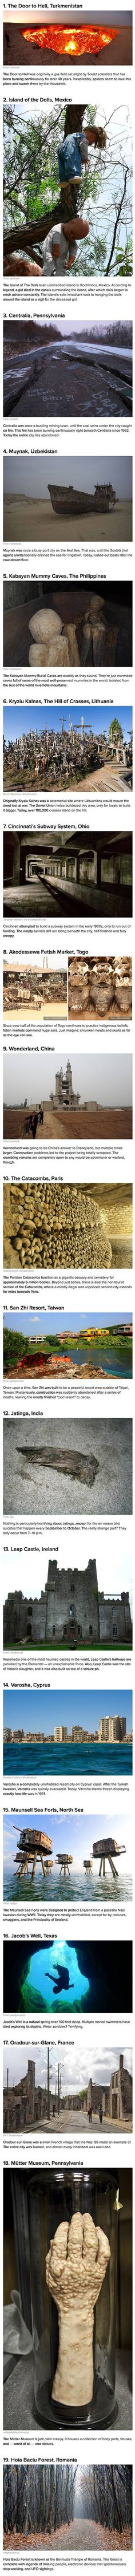 Here are some creepy locations from around the world that actually exist.